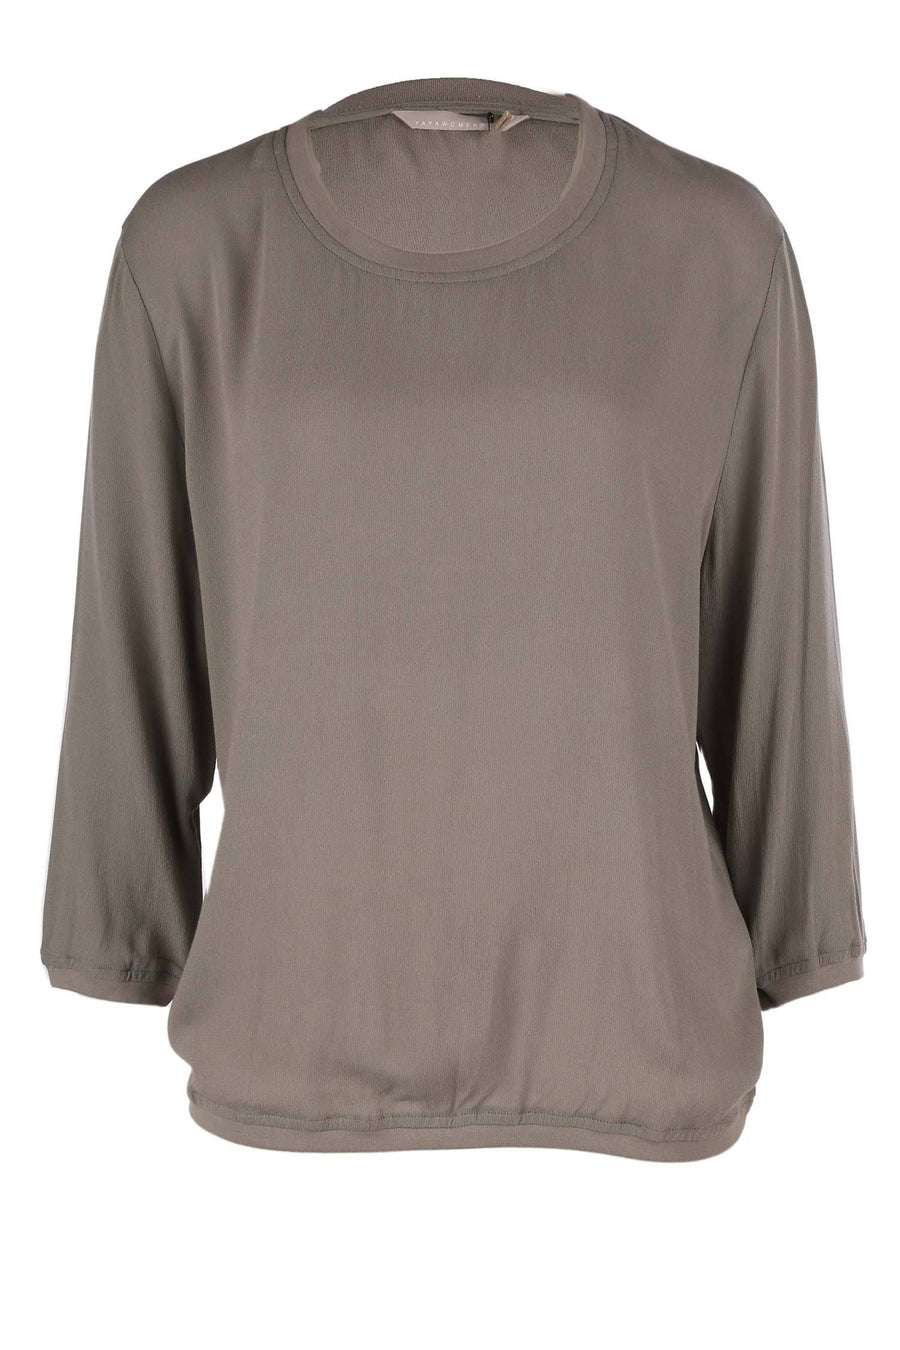 Blouson Top in Greyish Green